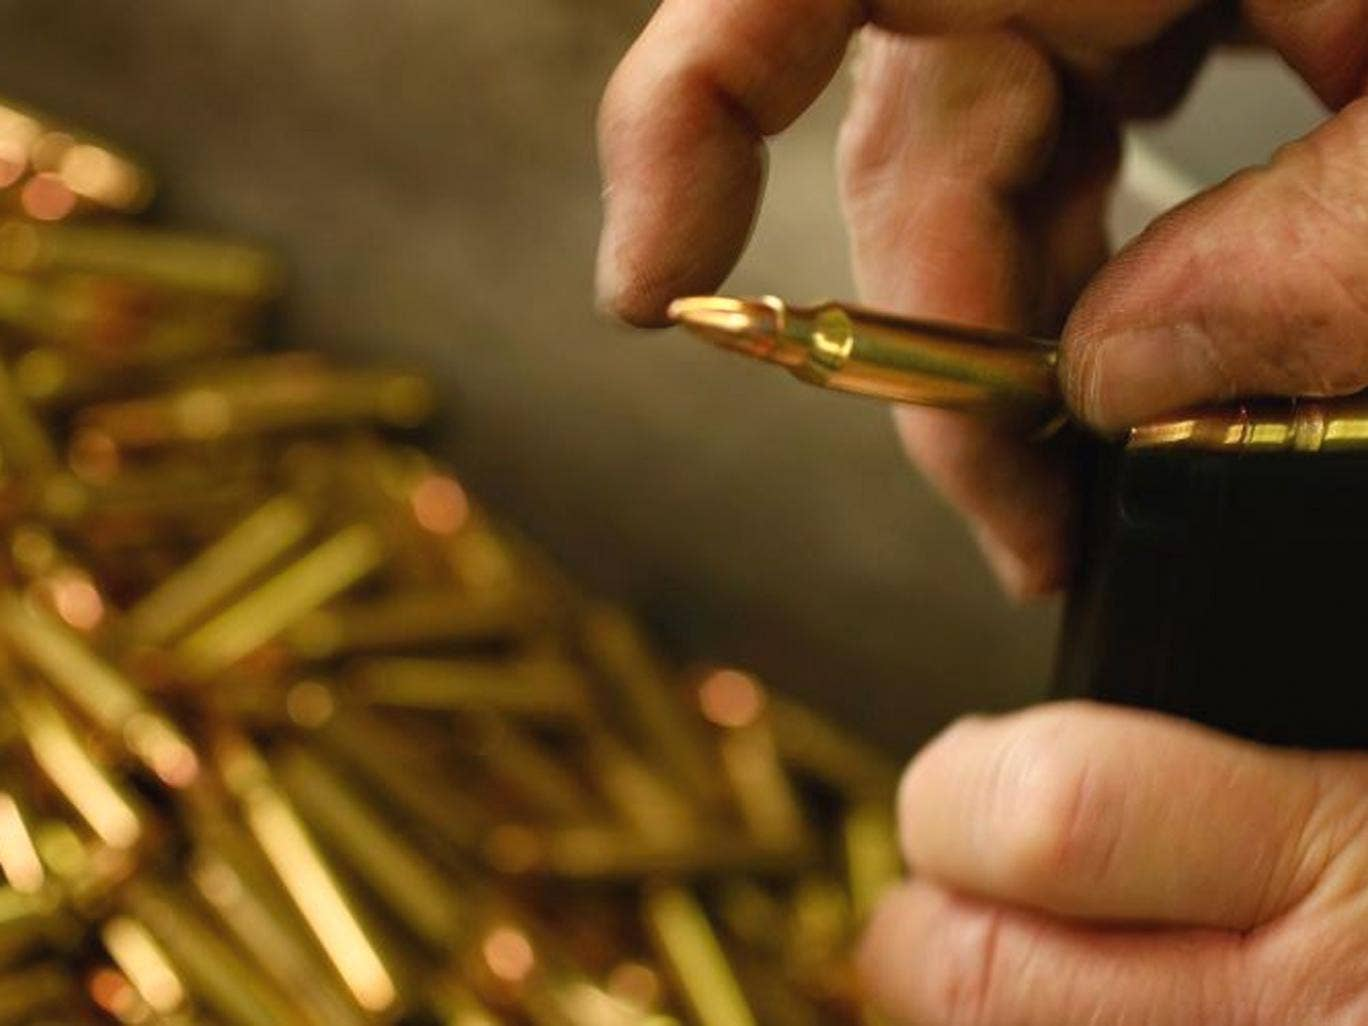 Independent gun-shop owners reported a stampede of customers anxious to buy assault rifles